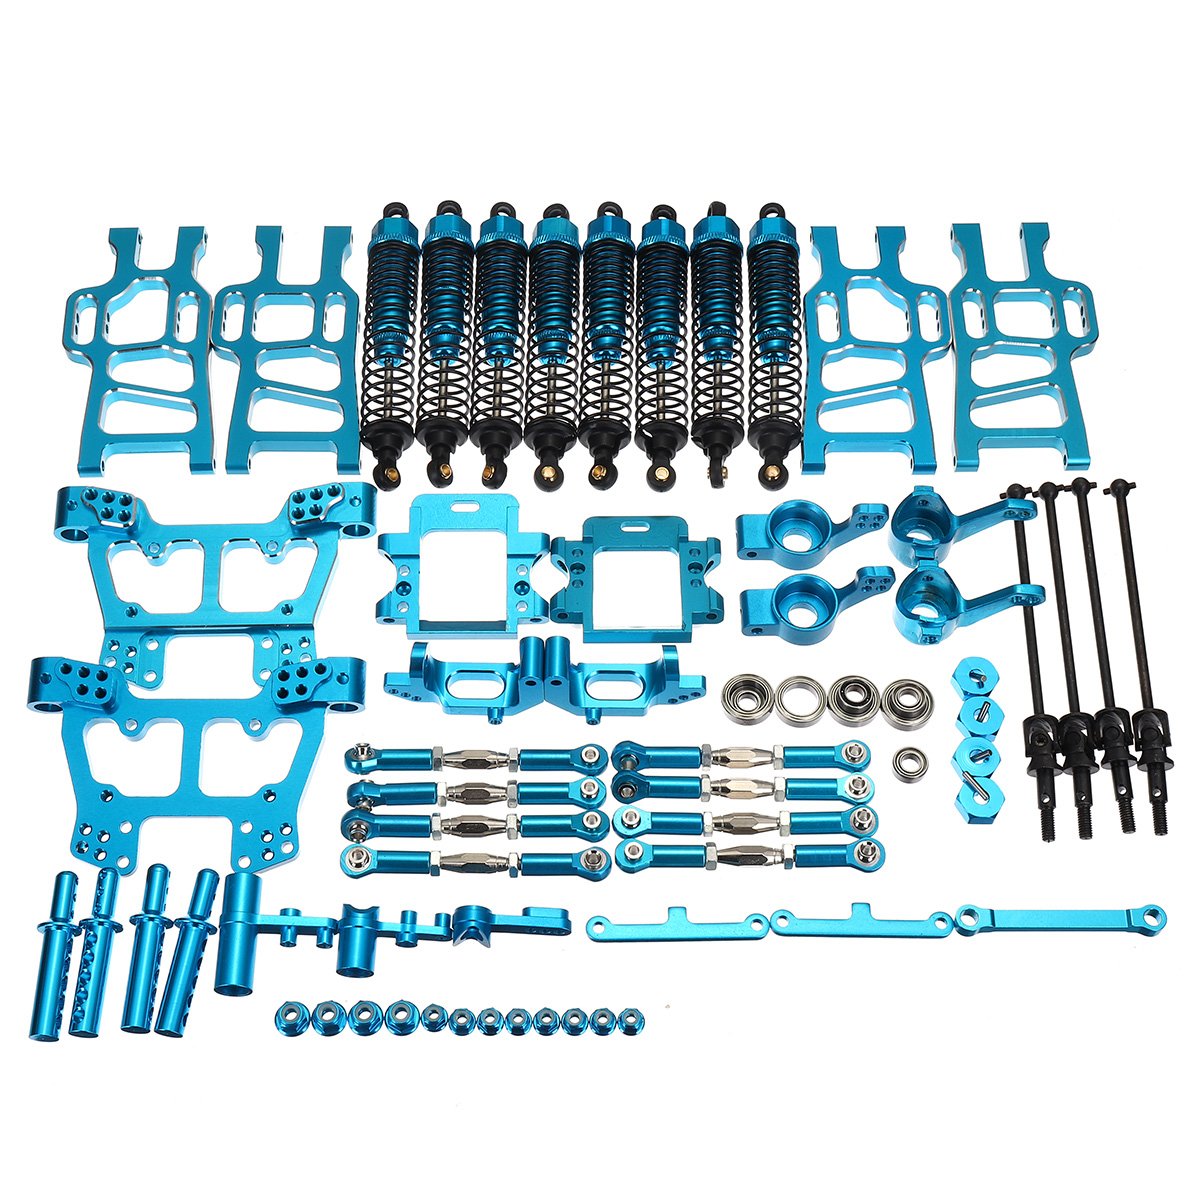 Upgrade Parts Package For HSP RC 1:10 94111 94108 Crawler Car Monster Truck Blue Parts & Accs Aluminum Alloy Blue цены онлайн